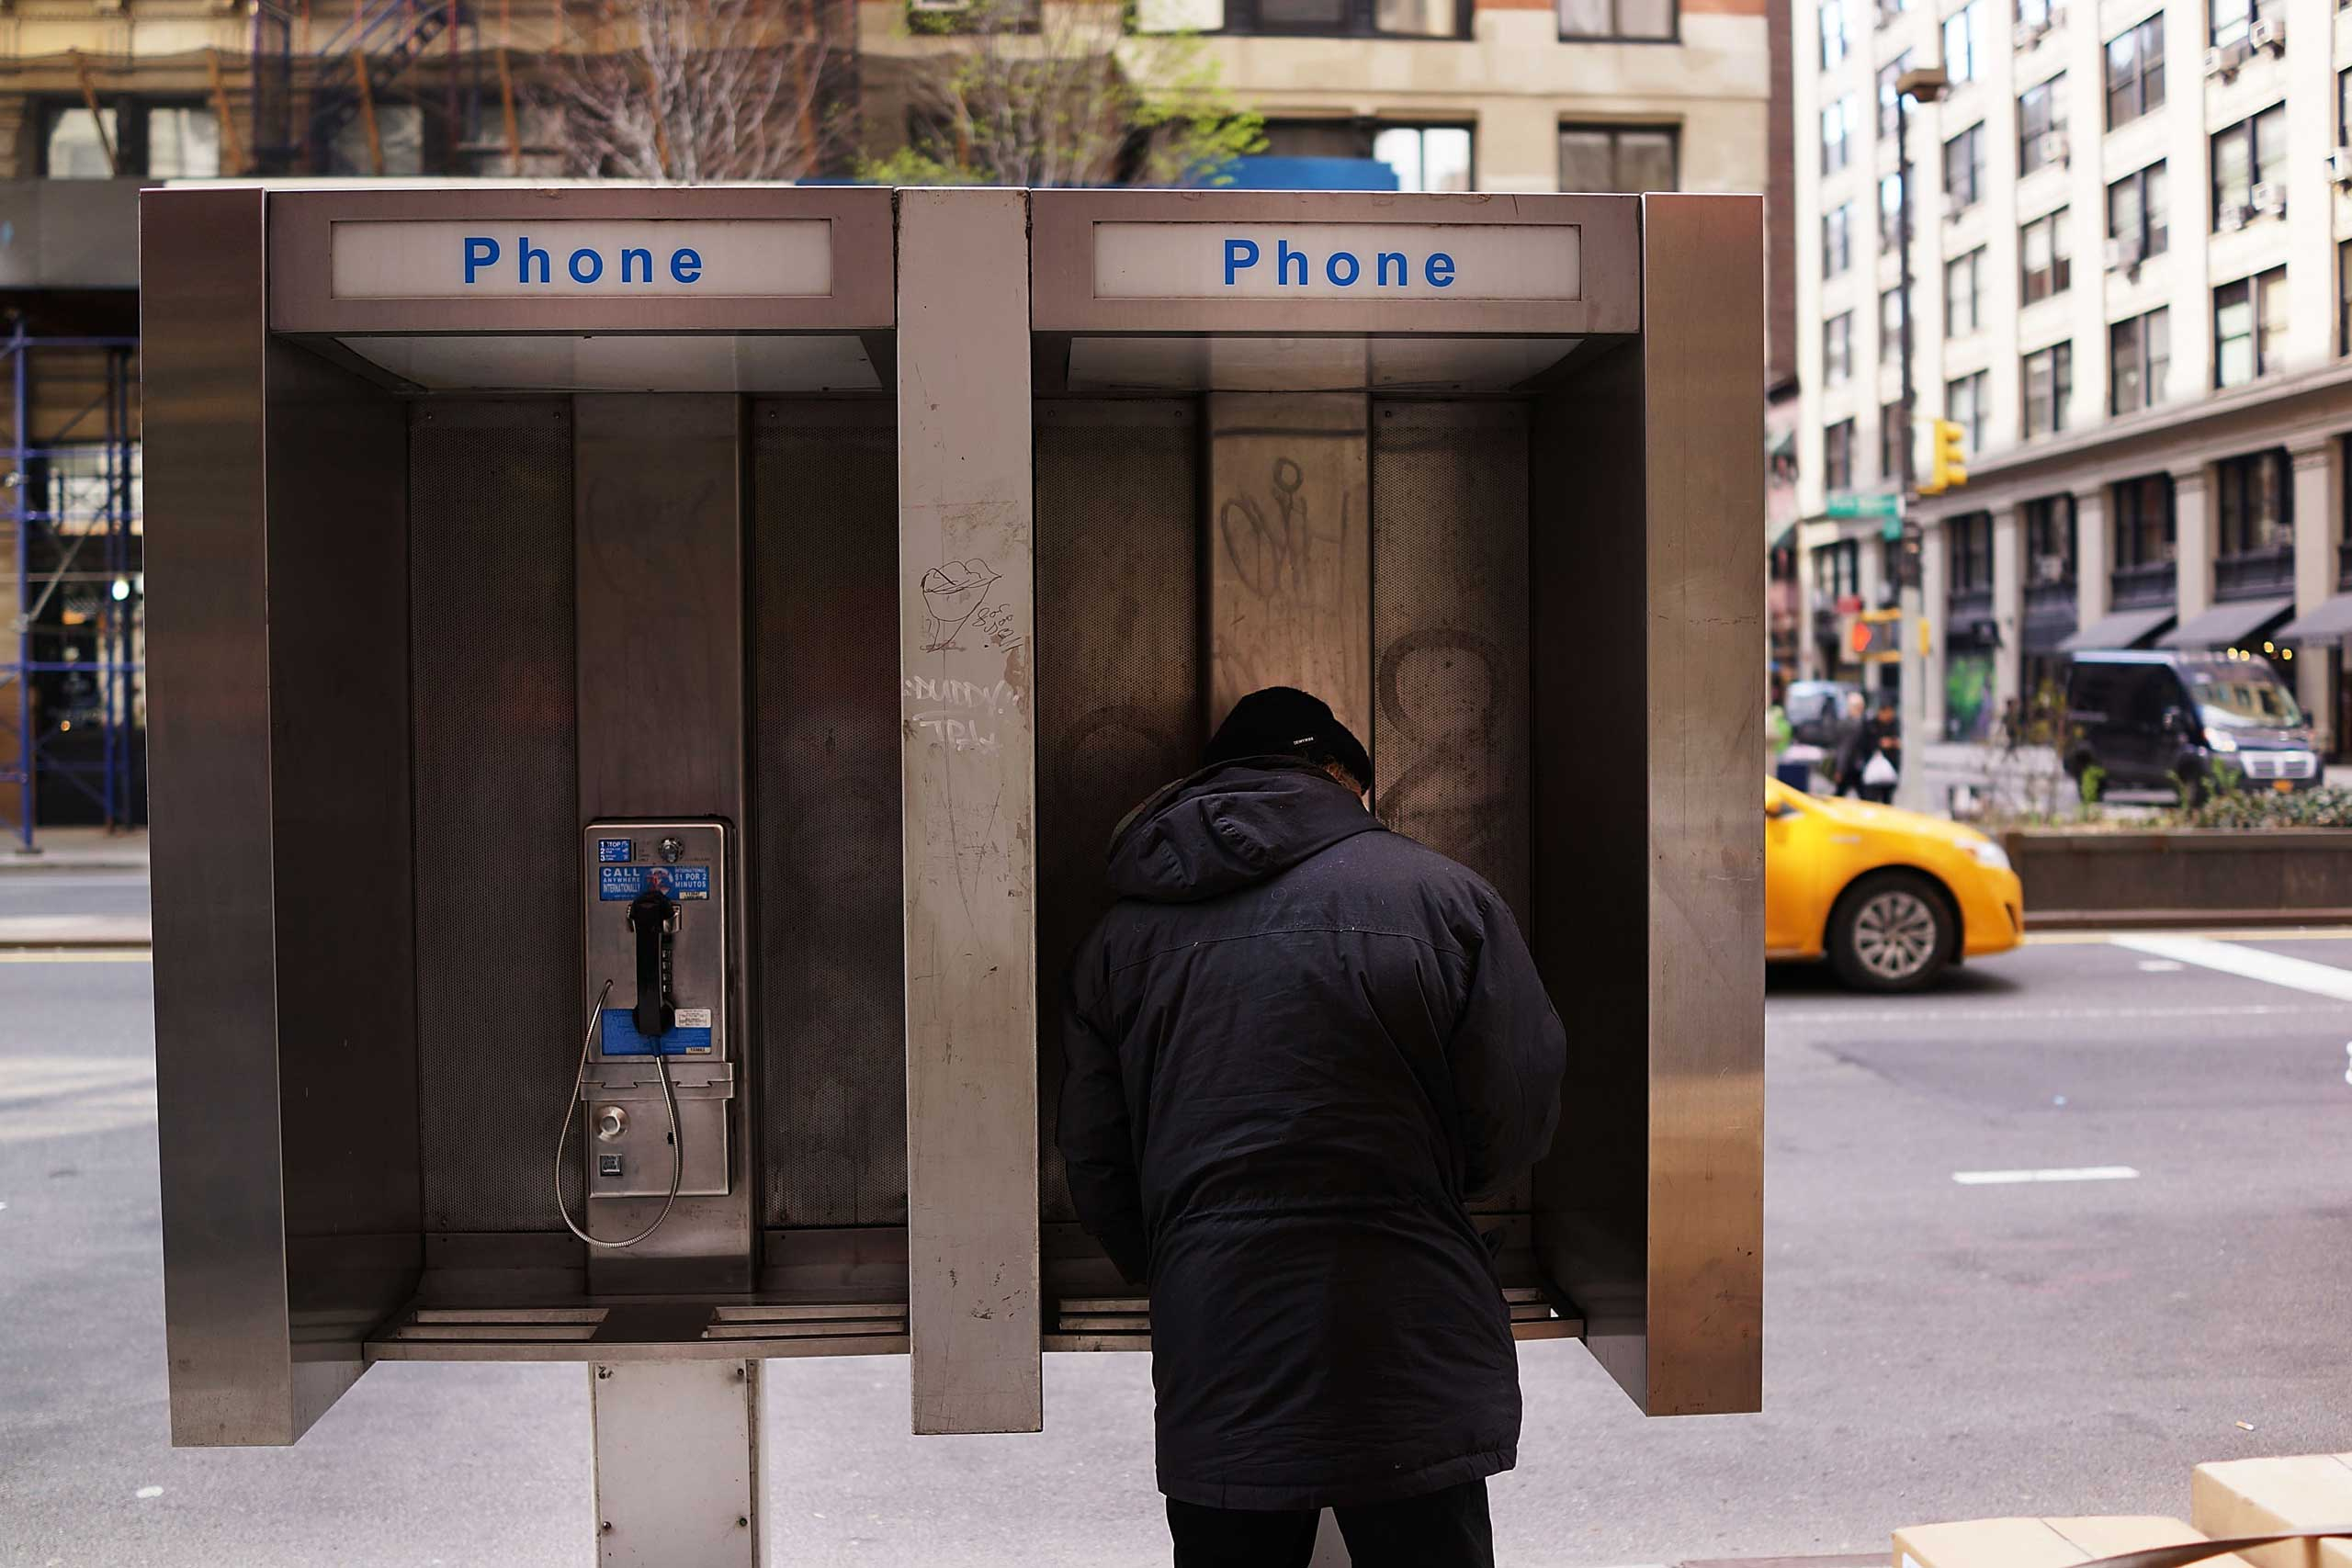 A man stands in a public phone booth on a Manhattan street on May 2, 2014 in New York City.